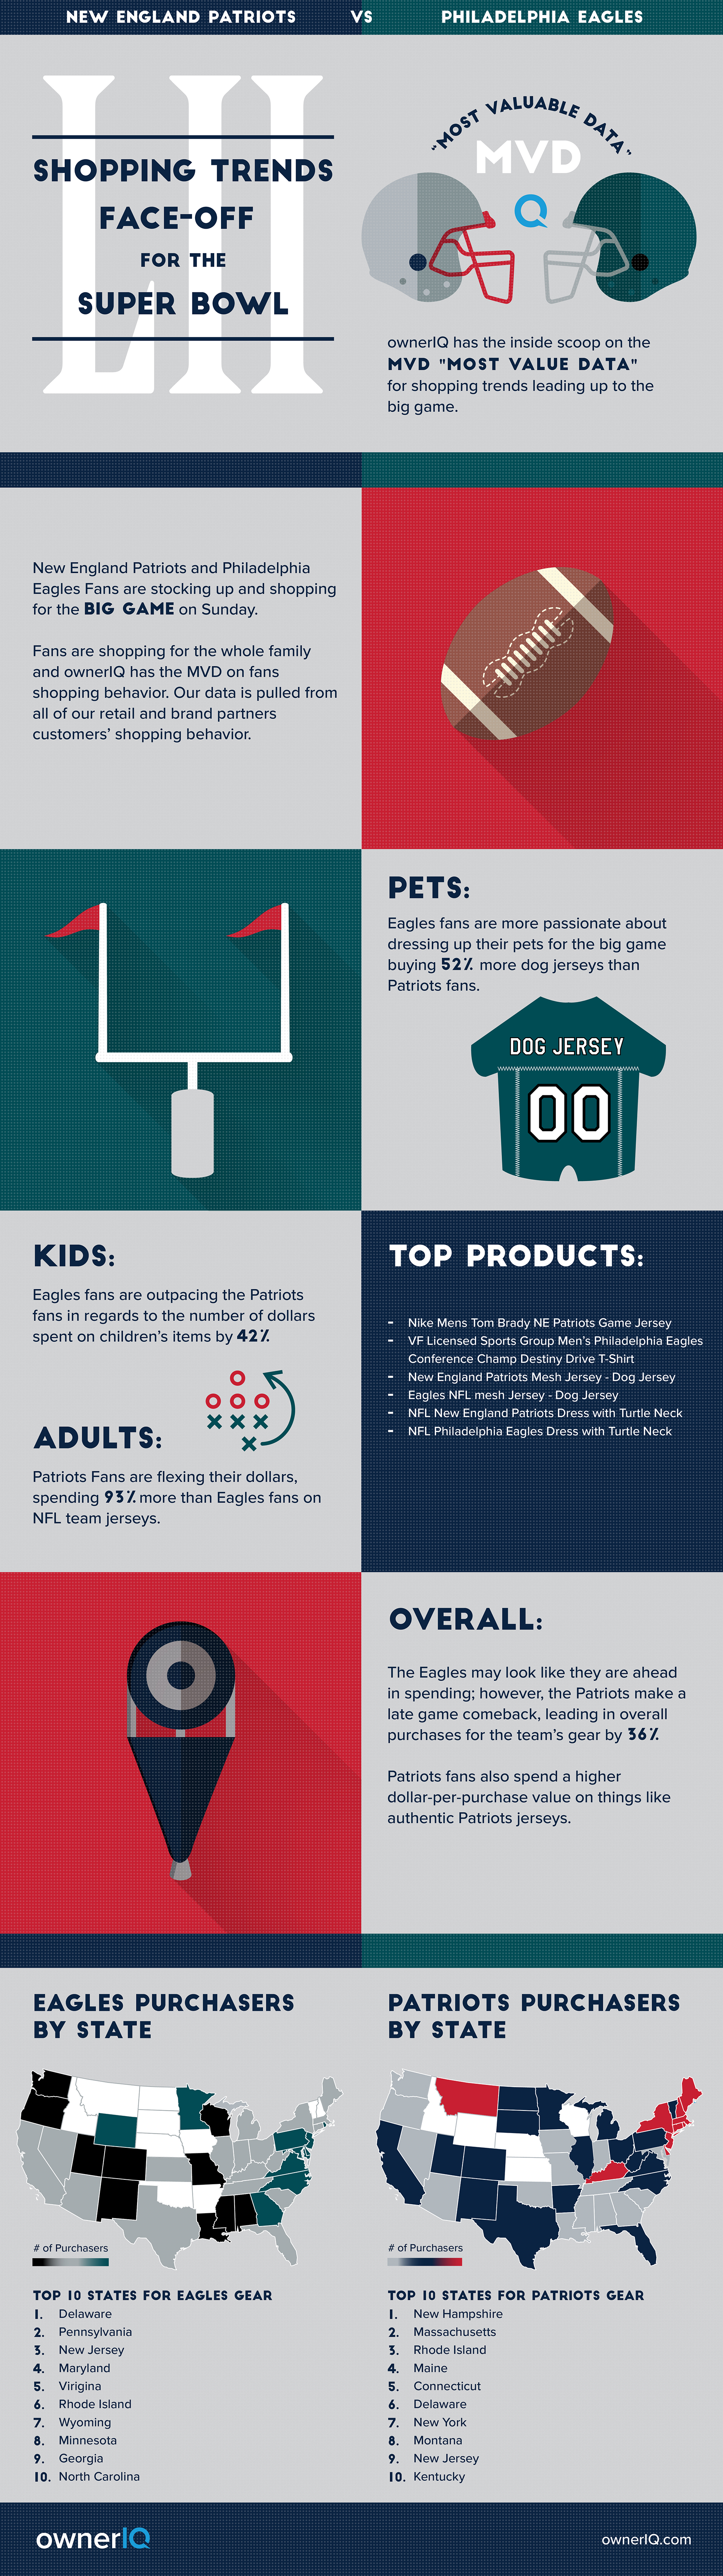 ownerIQ's Data Insights: Shopping Trends Face-off for the Super Bowl